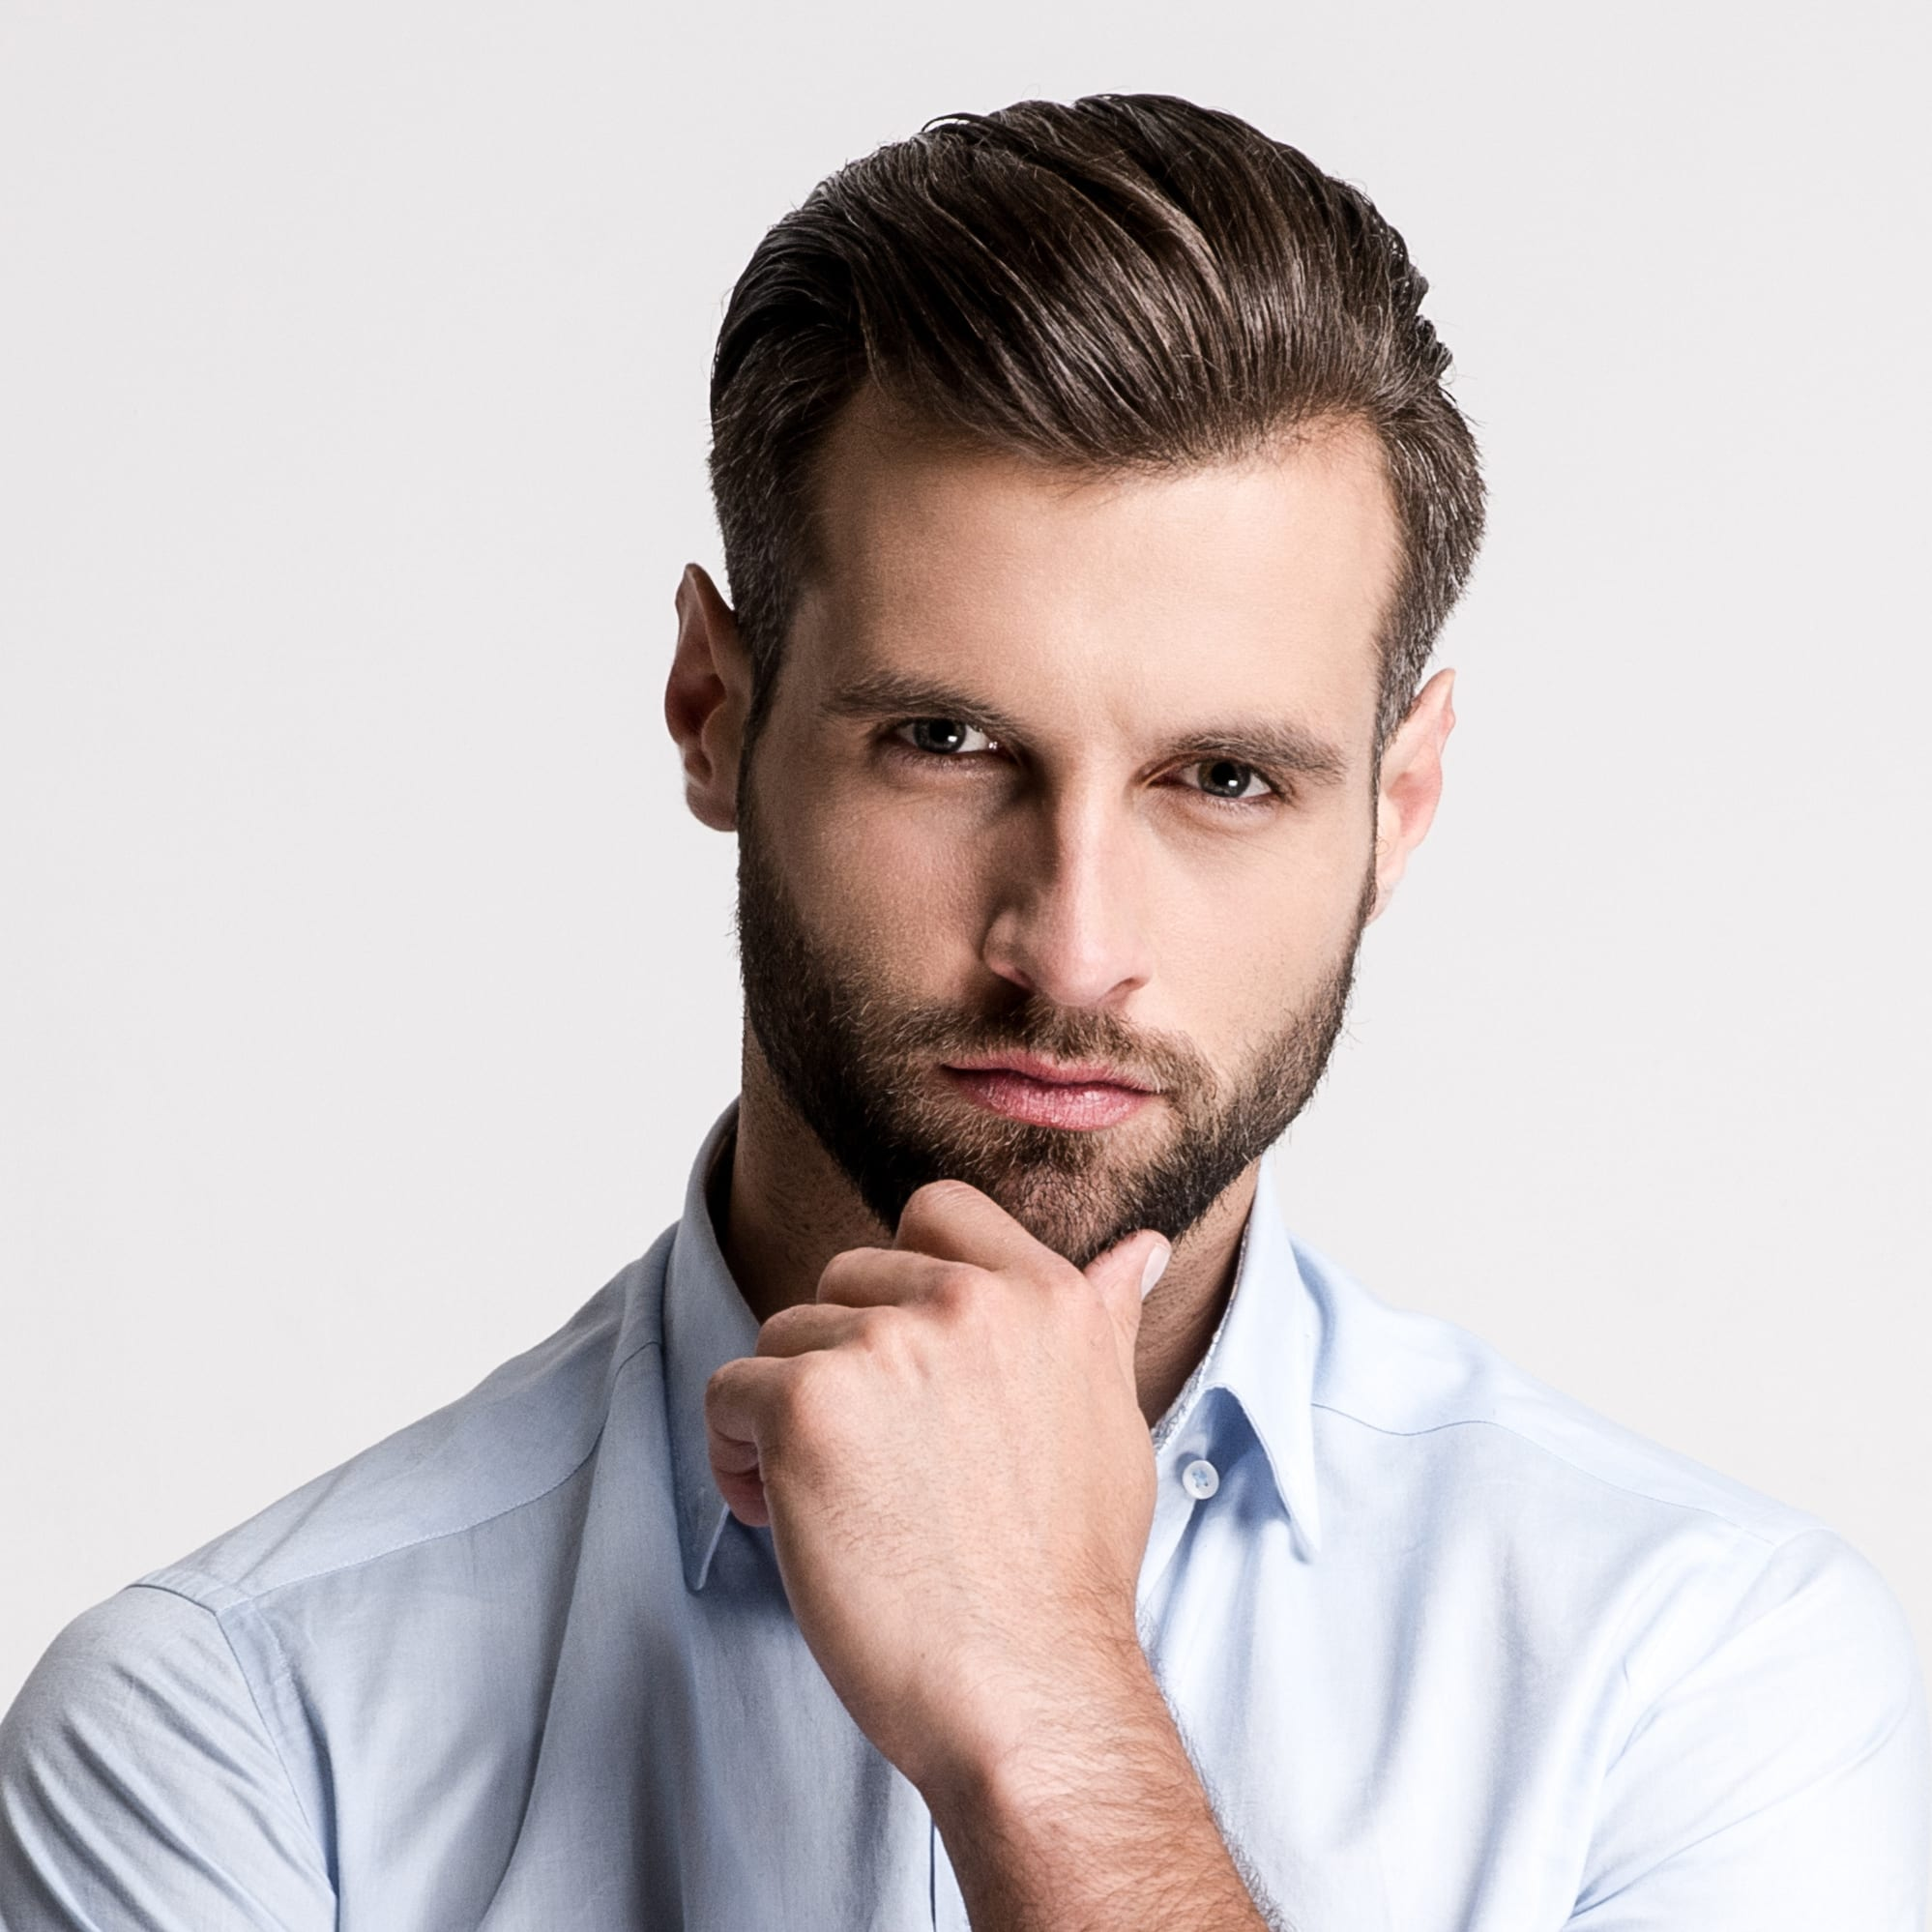 6 Best Men's Hair Products For Thin Hair